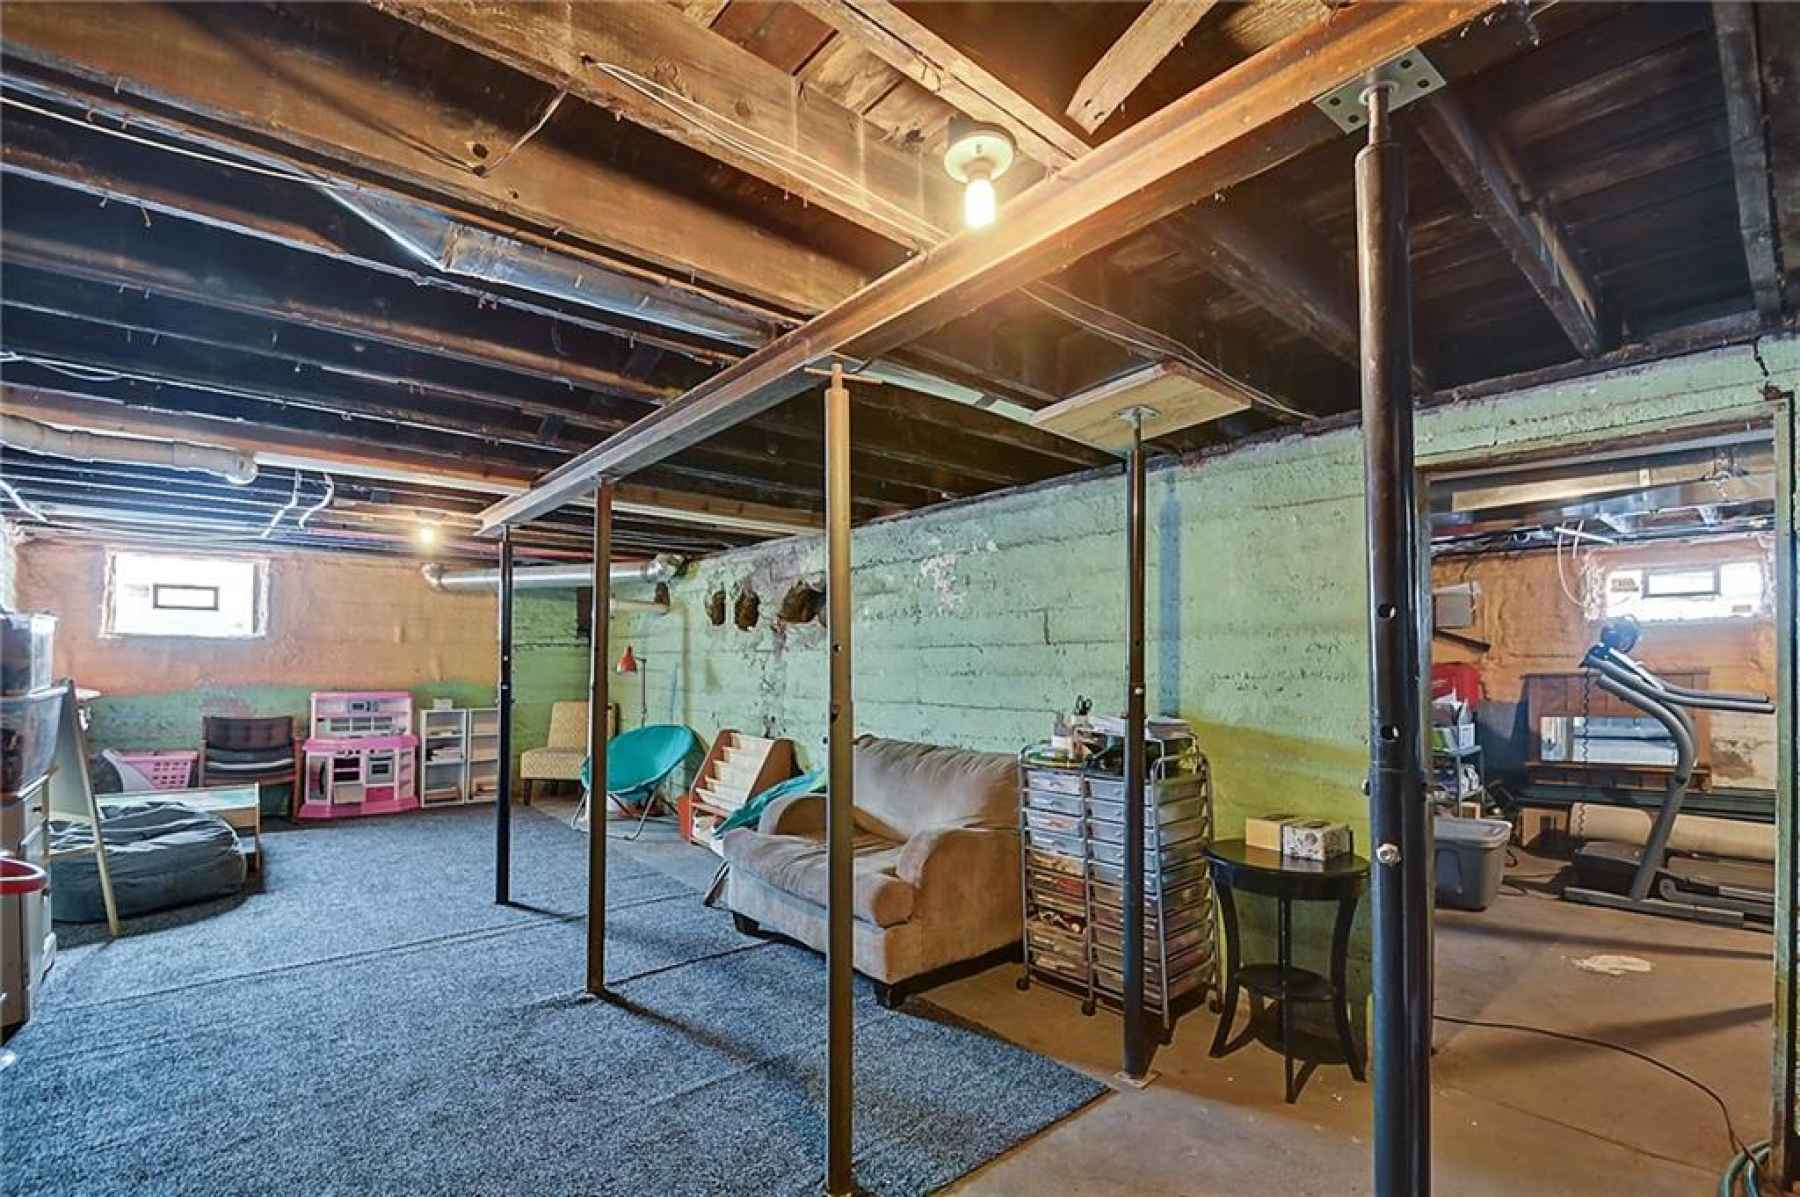 Unfinished basement provides space for storage or other livable space.